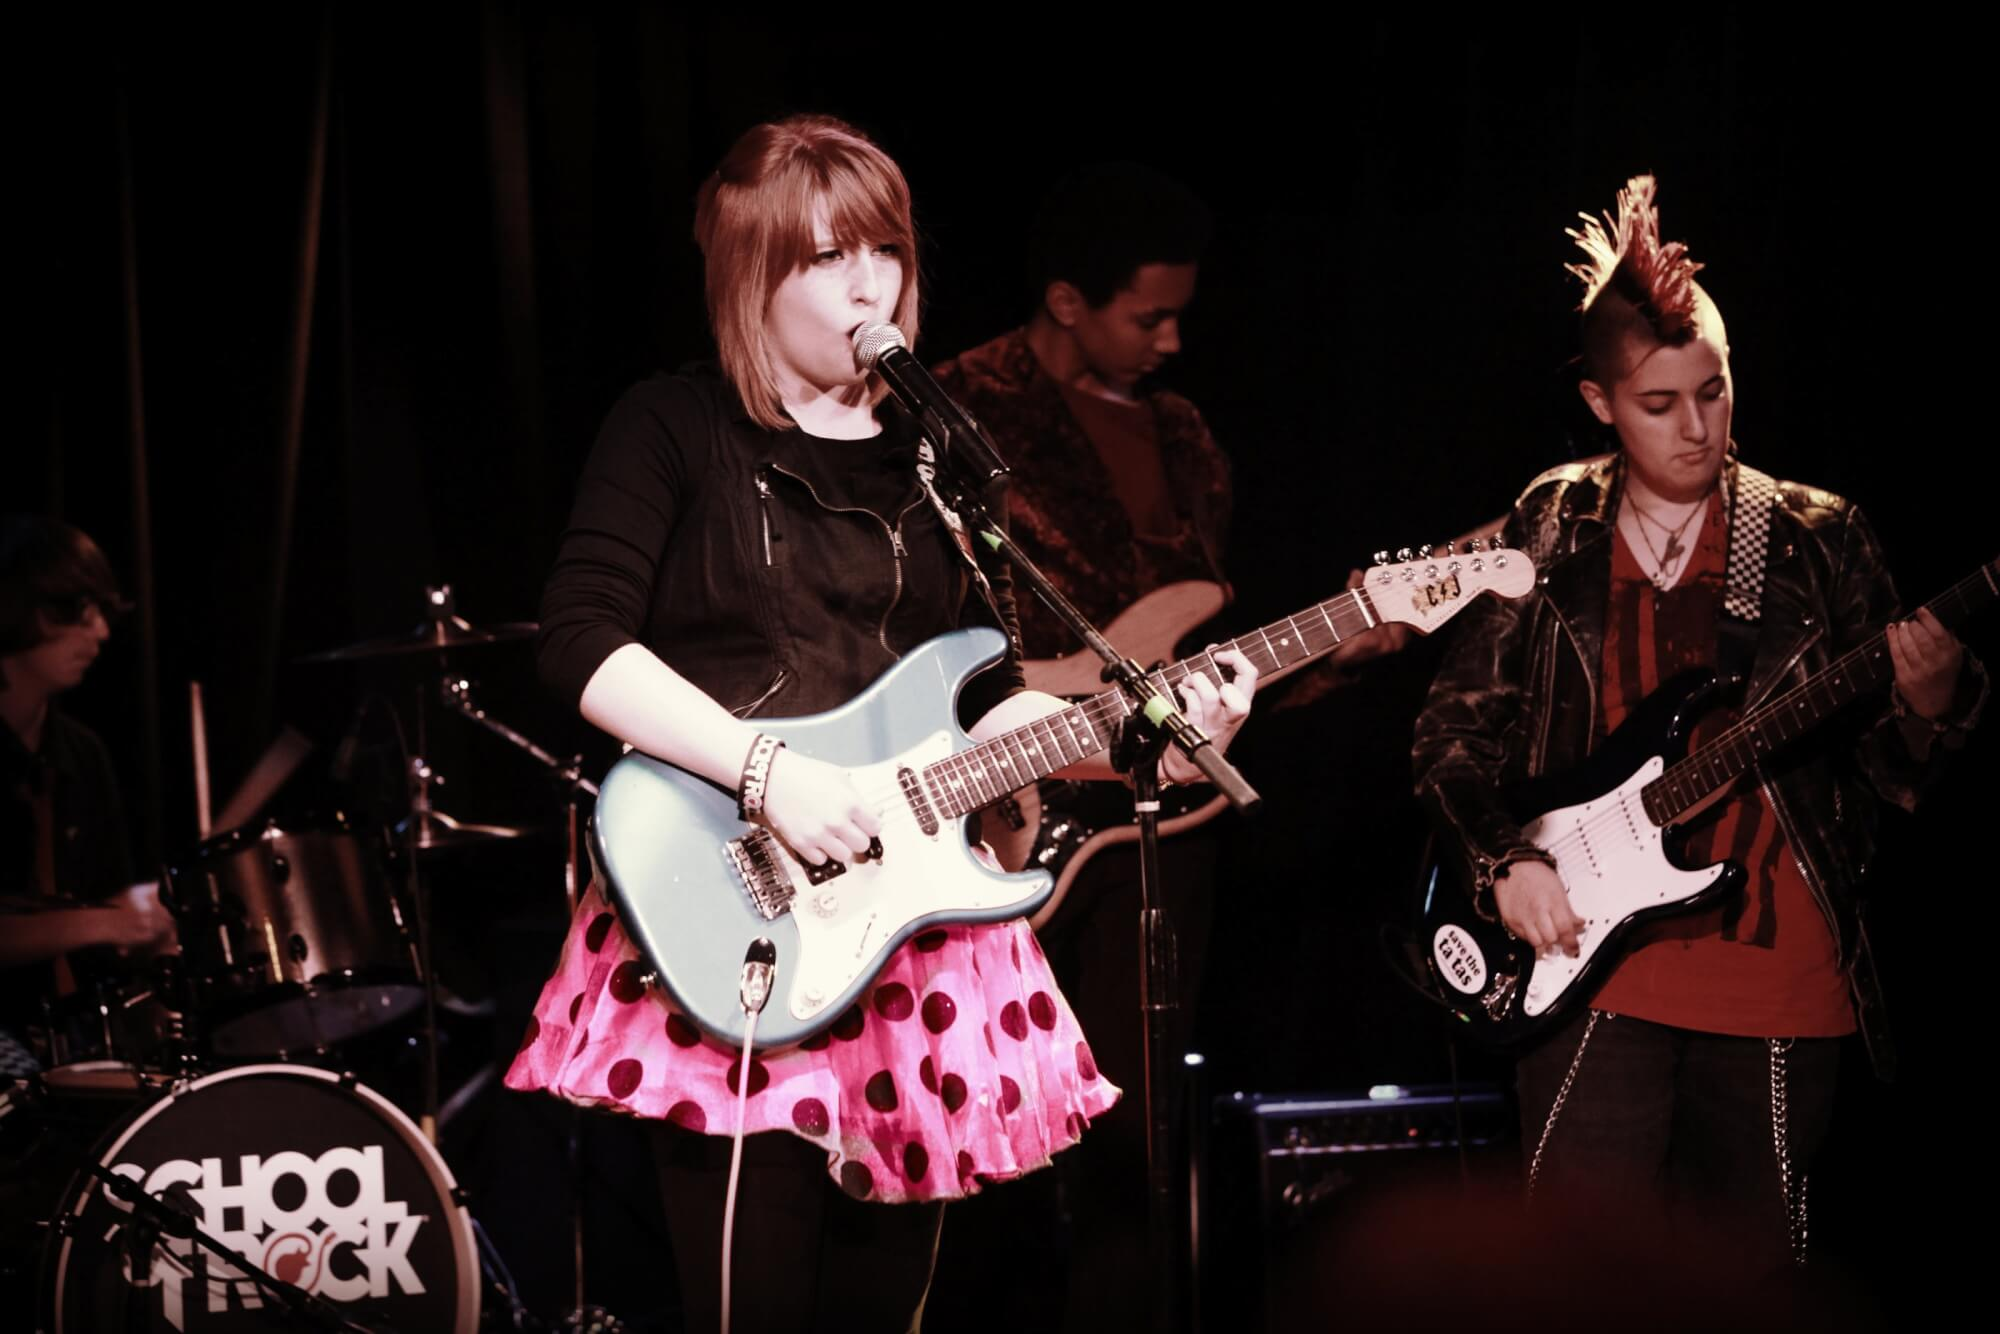 Students perform at the Whisky A Go-Go for their Season Show Performance.